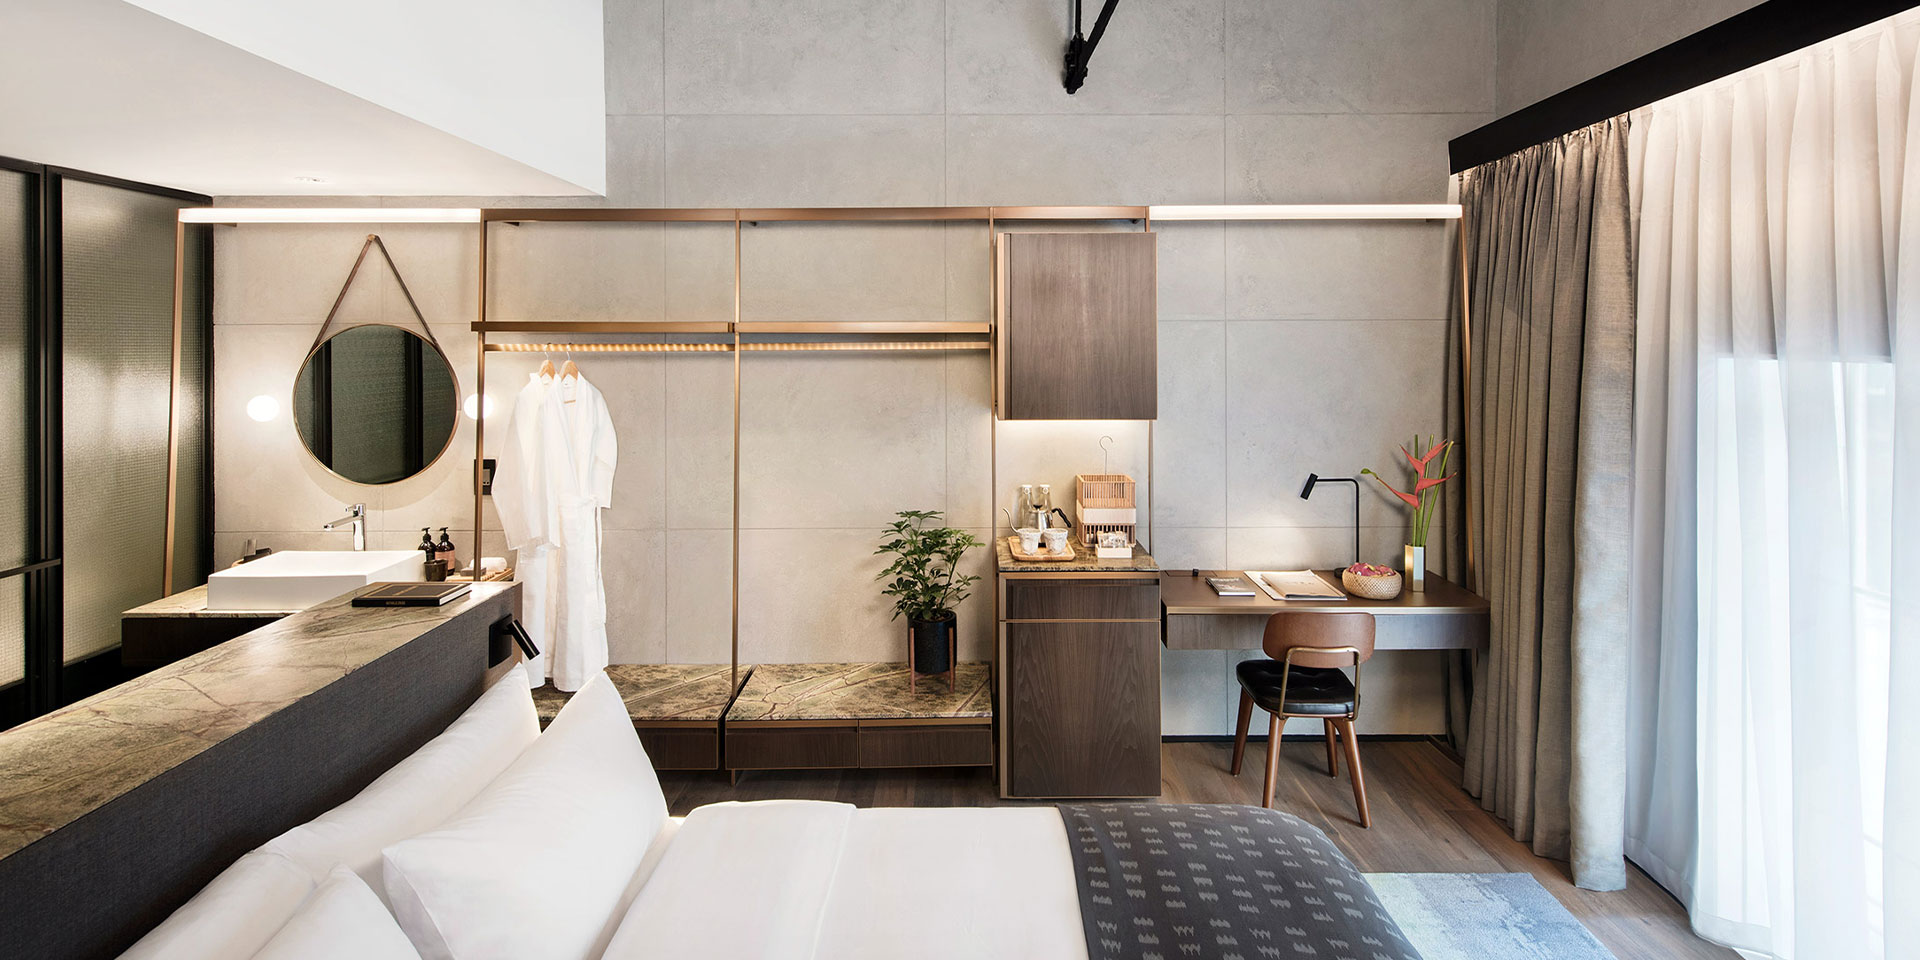 TheWarehouseHotel-Singapore-Singapore-Asia-rooms.jpg